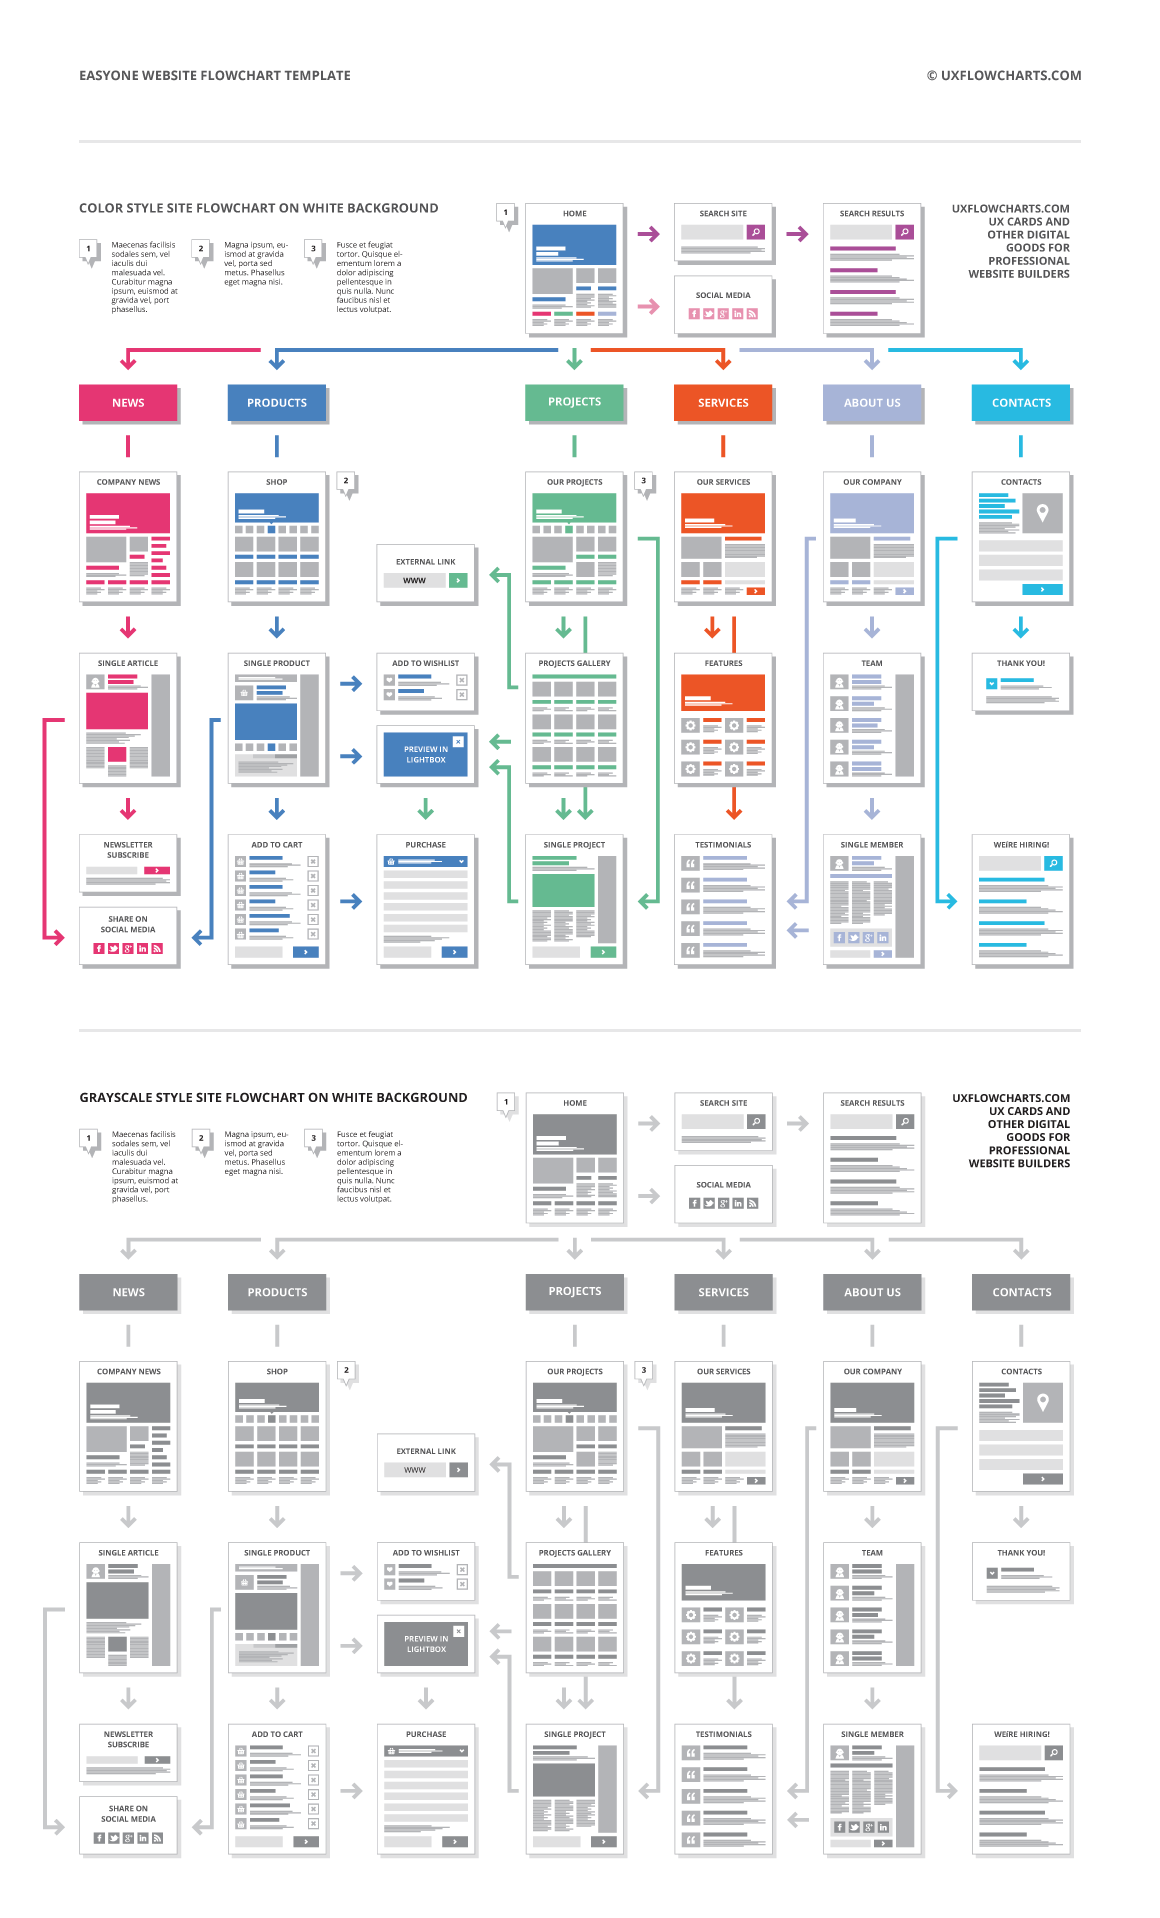 Ux flowcharts ux cards and useful digital tools for ux planning easyone website flowchart template easyone website flowchart template nvjuhfo Choice Image